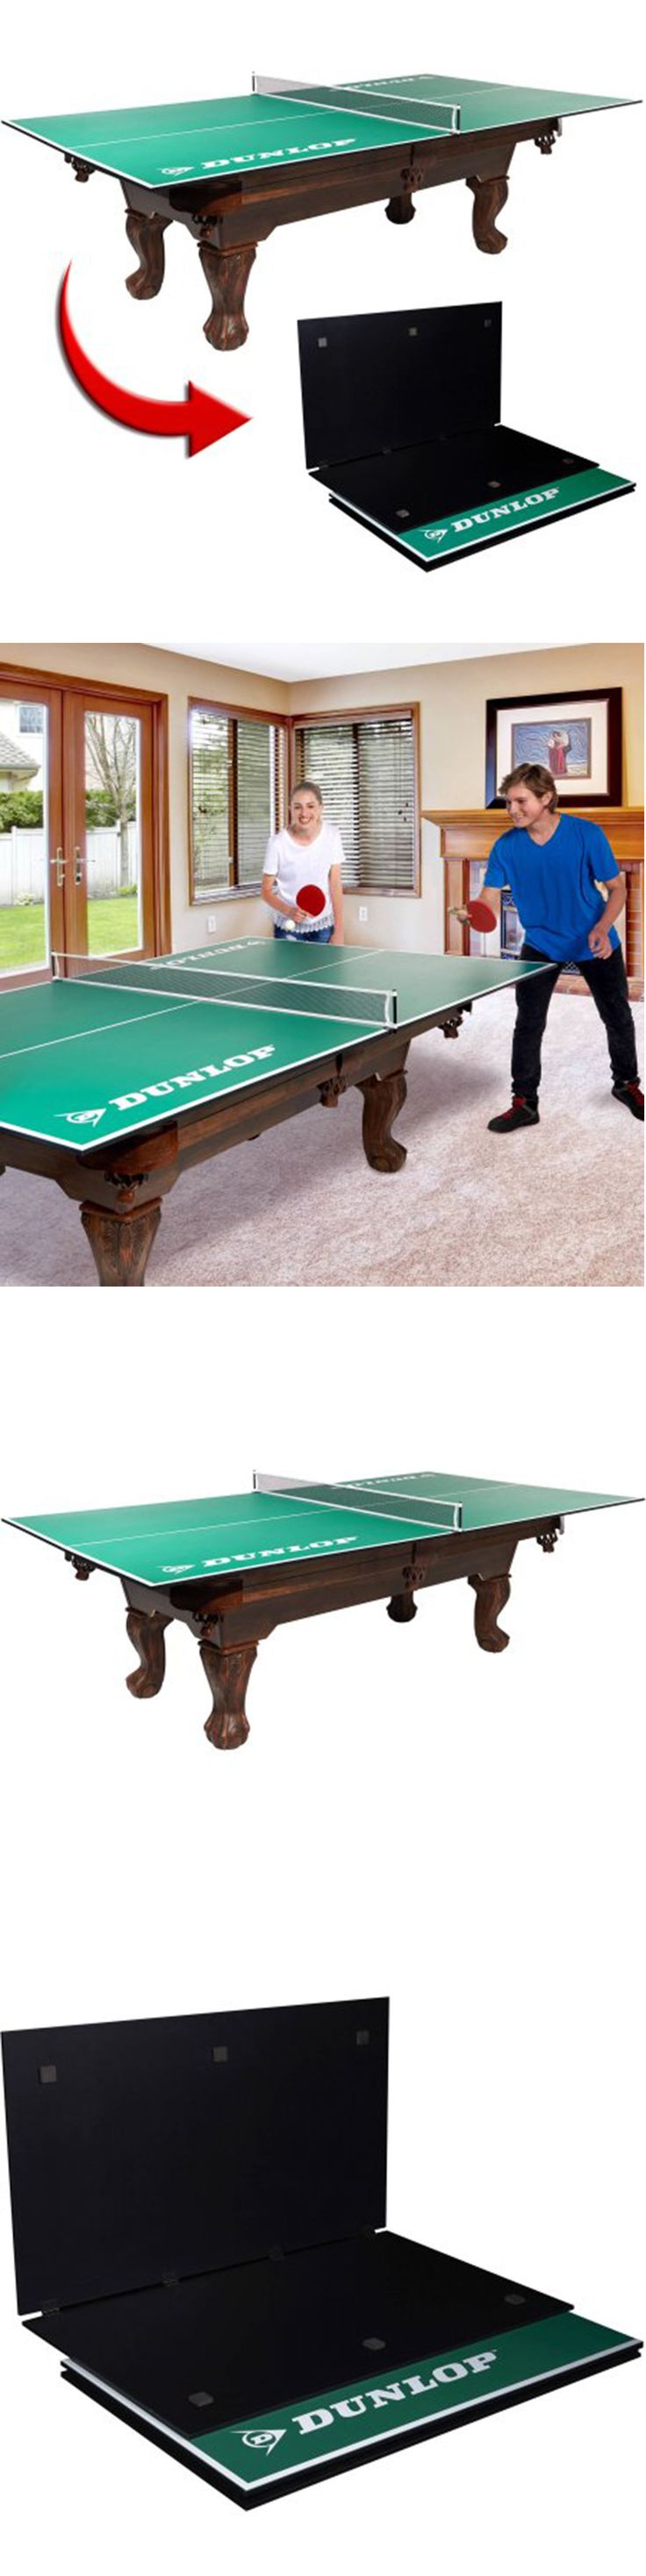 Tables Ping Pong Table For Pool Table Mesa De Outdoor Top